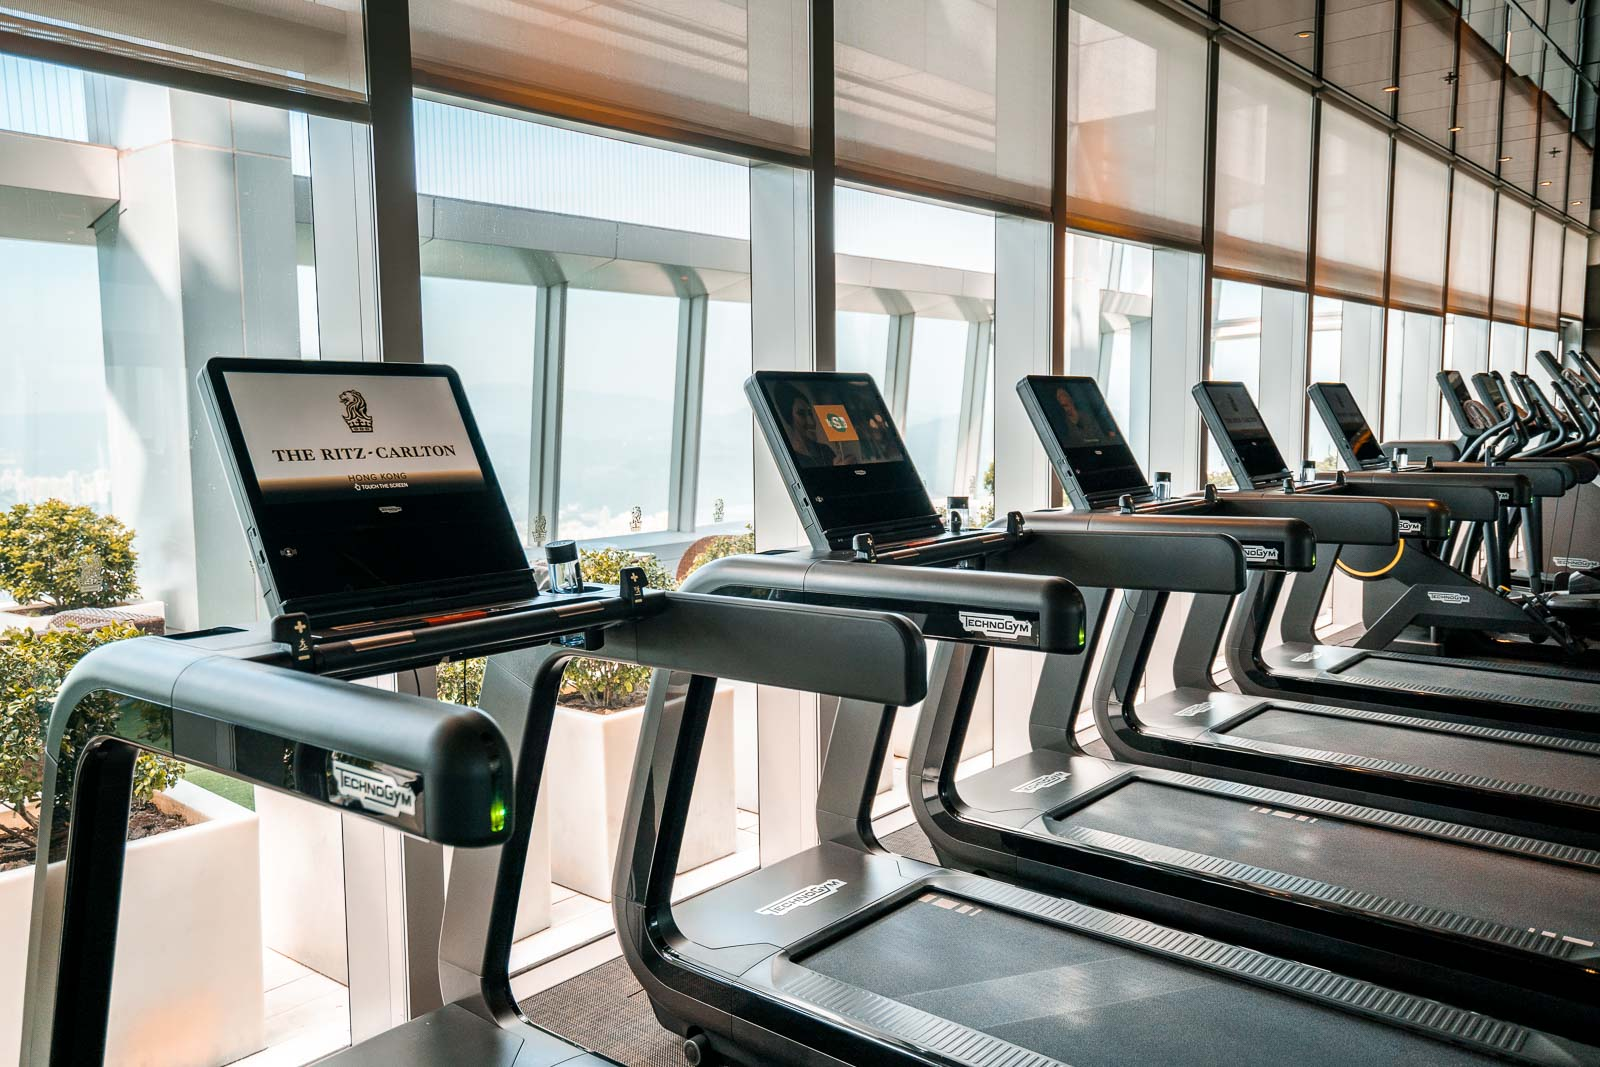 Running treadmills in the gym